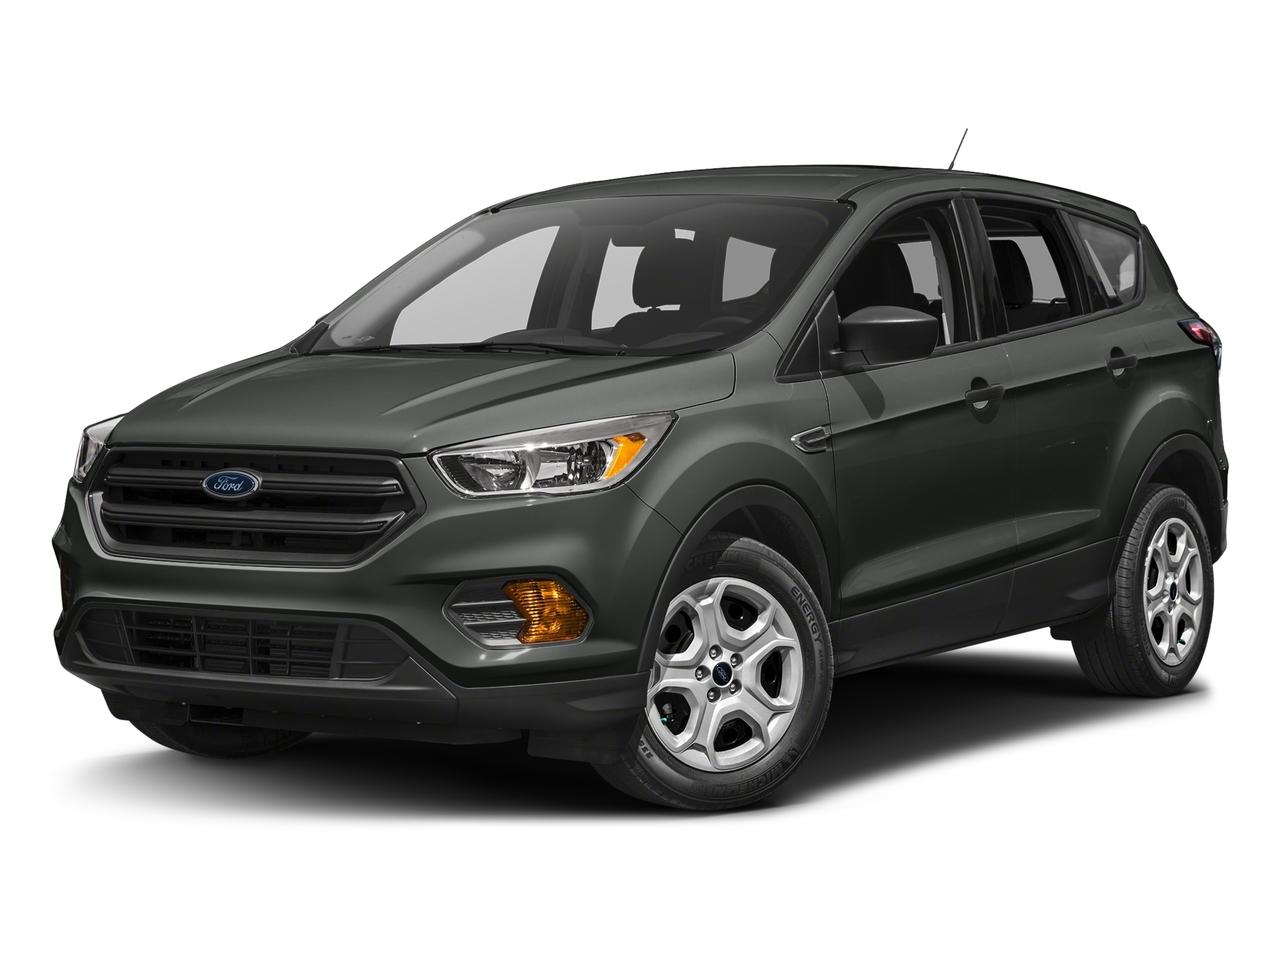 2017 Ford Escape Vehicle Photo in Prince Frederick, MD 20678